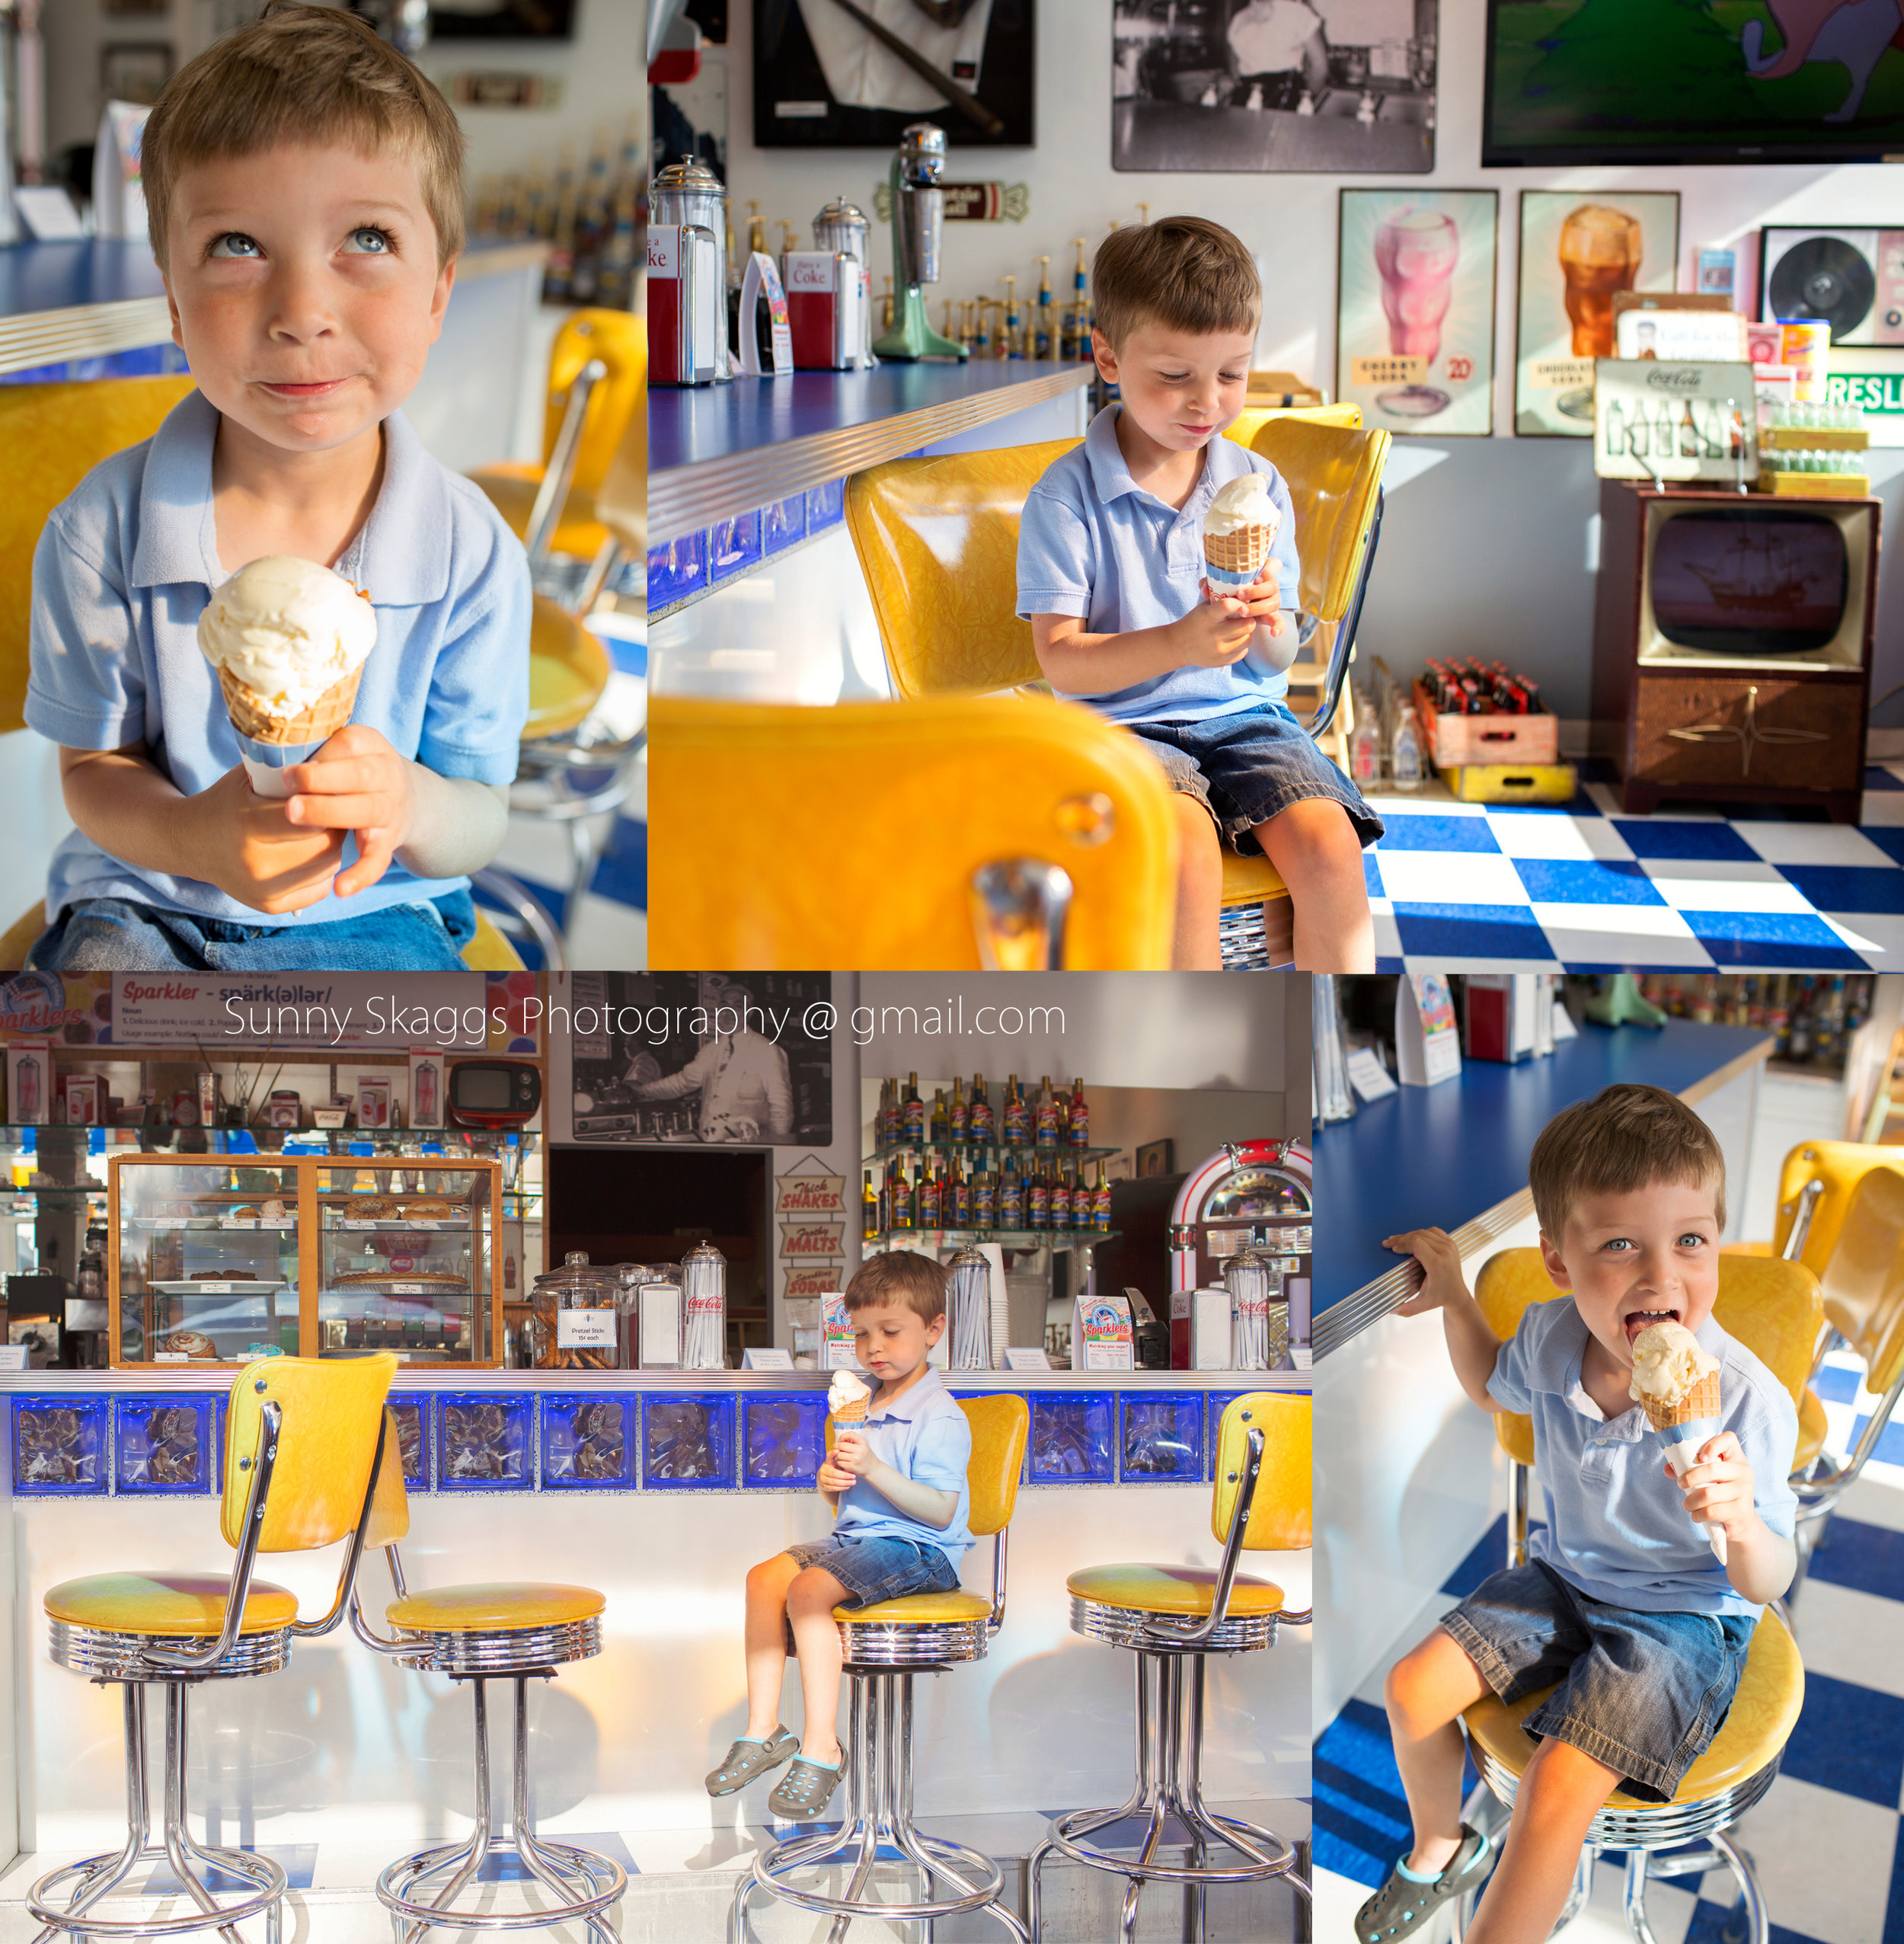 The Walmart Spark Cafe and Soda Fountain, Bentonville, AR, Ice Cream Session with a little blue eyed boy.